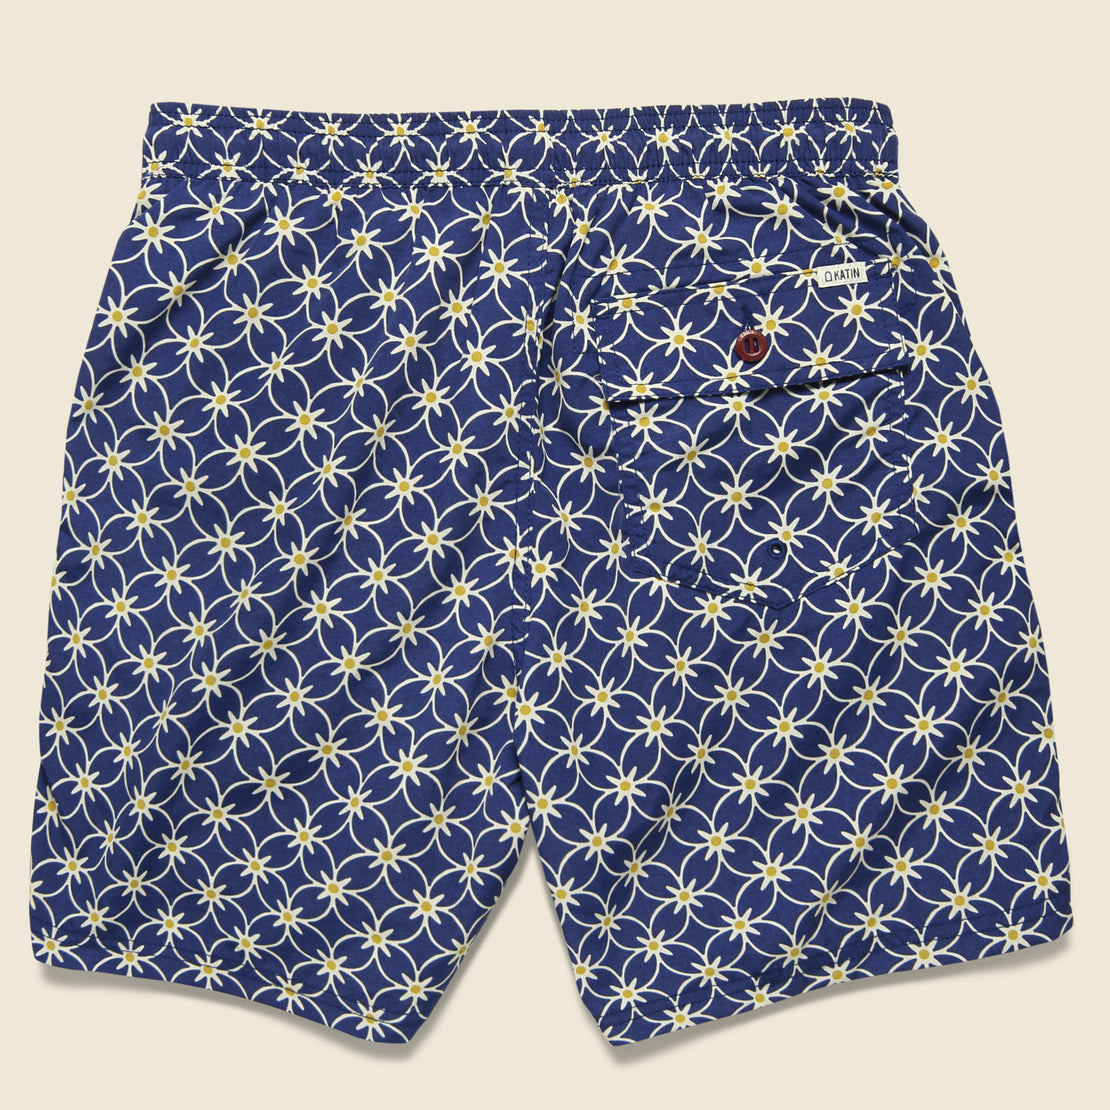 Plaza Valley Swim Trunk - Spanish Blue